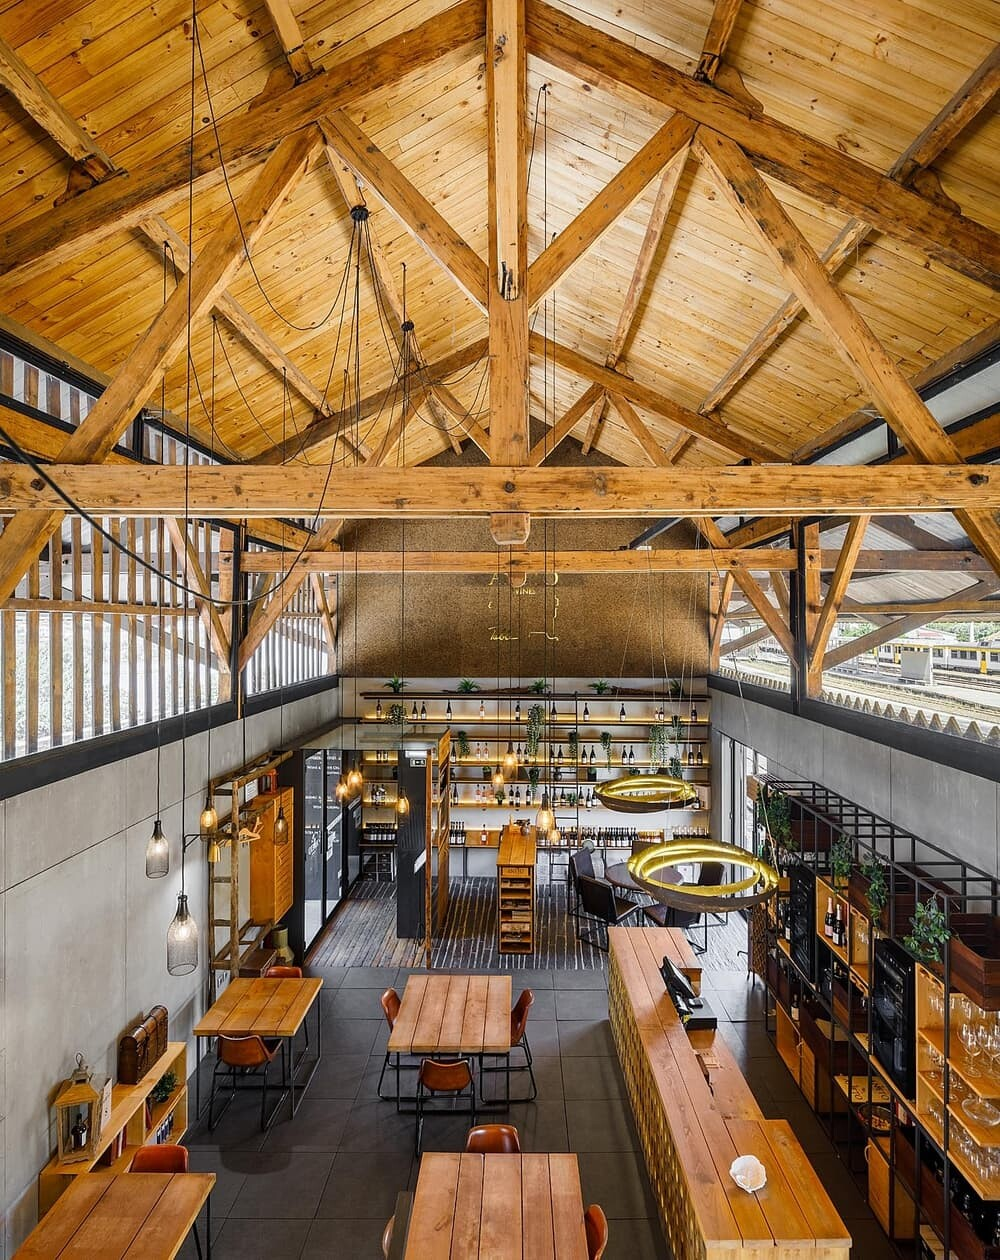 Aneto Restaurant by Just an Architect